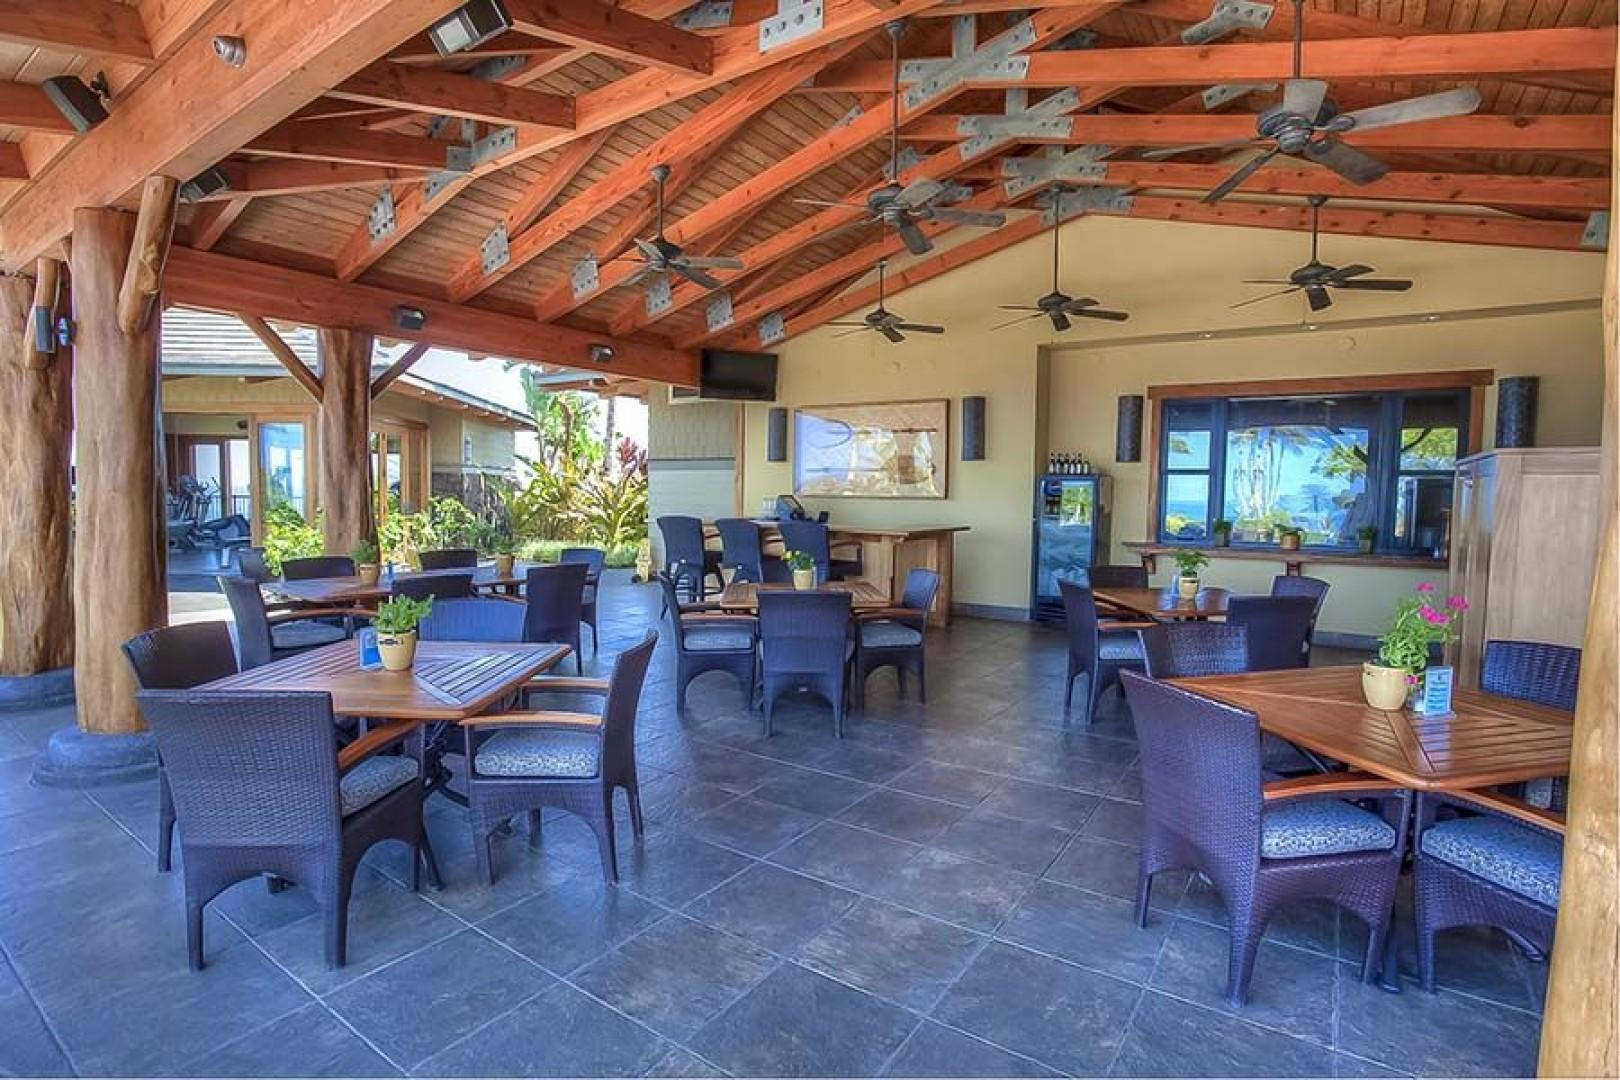 Enjoy poolside dining at the Ocean View Cafe and Happy Hour